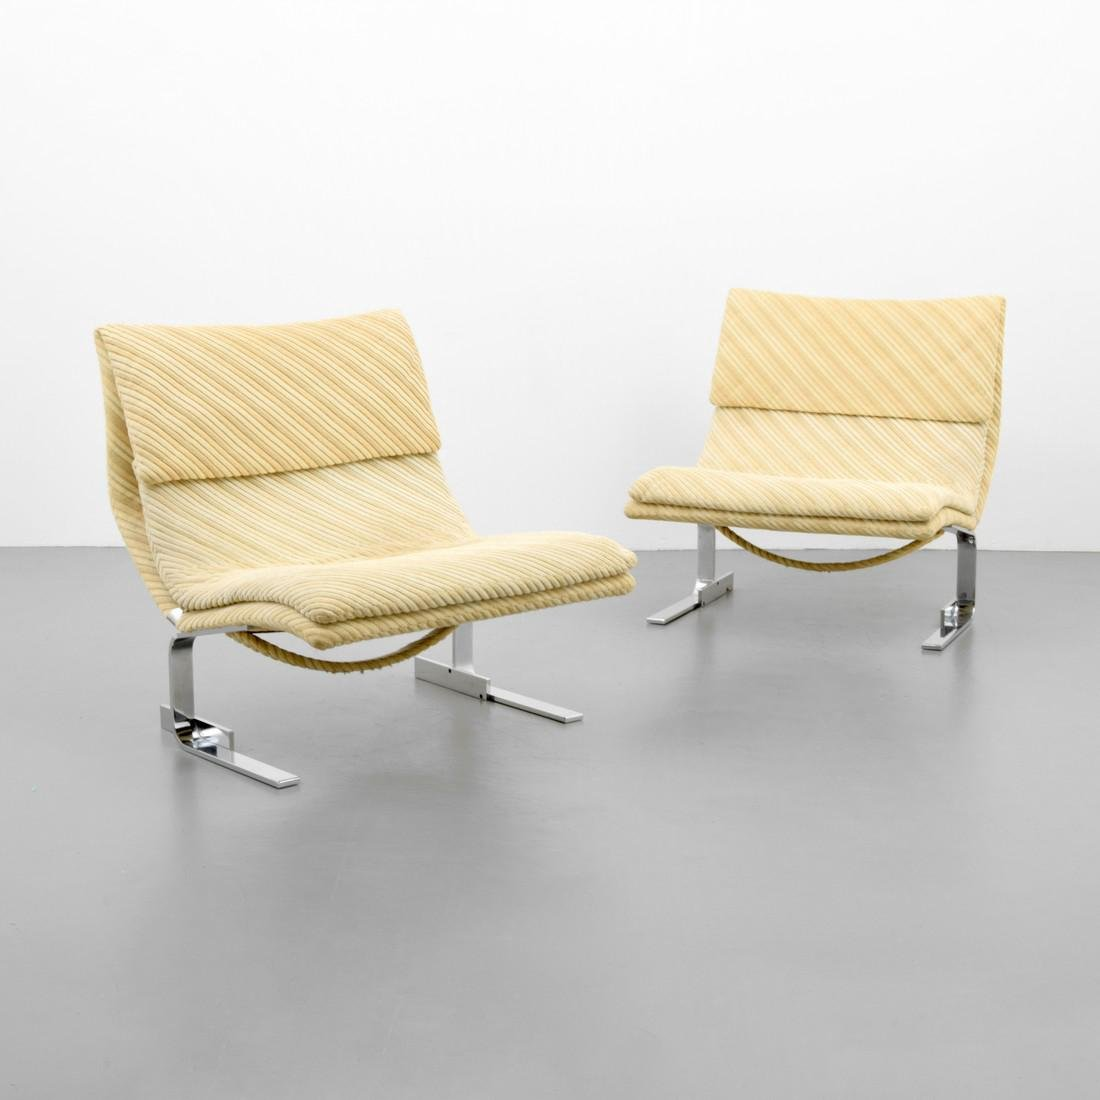 Pair of Giovanni Offredi WAVE / ONDA Lounge Chairs - 8